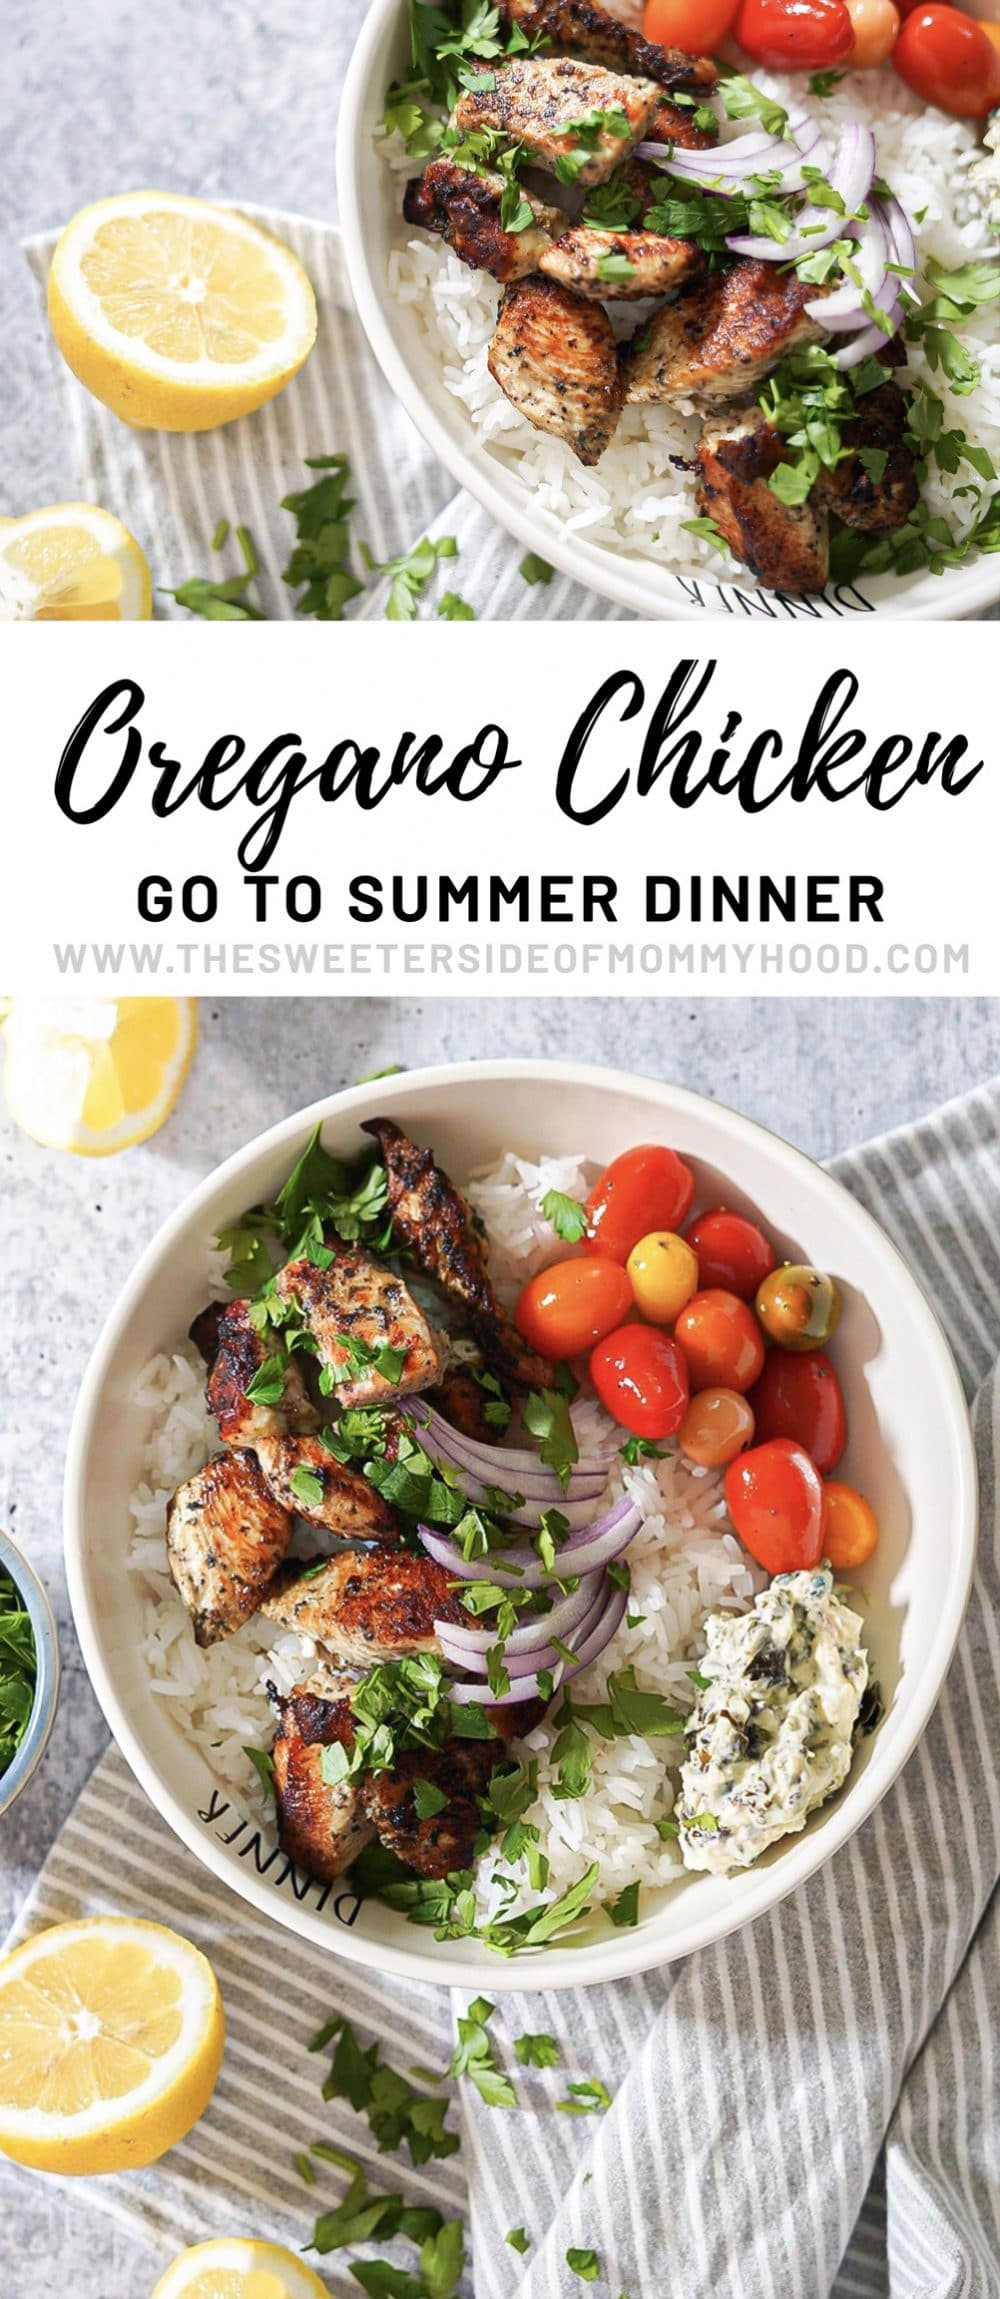 Easy grilled oregano chicken